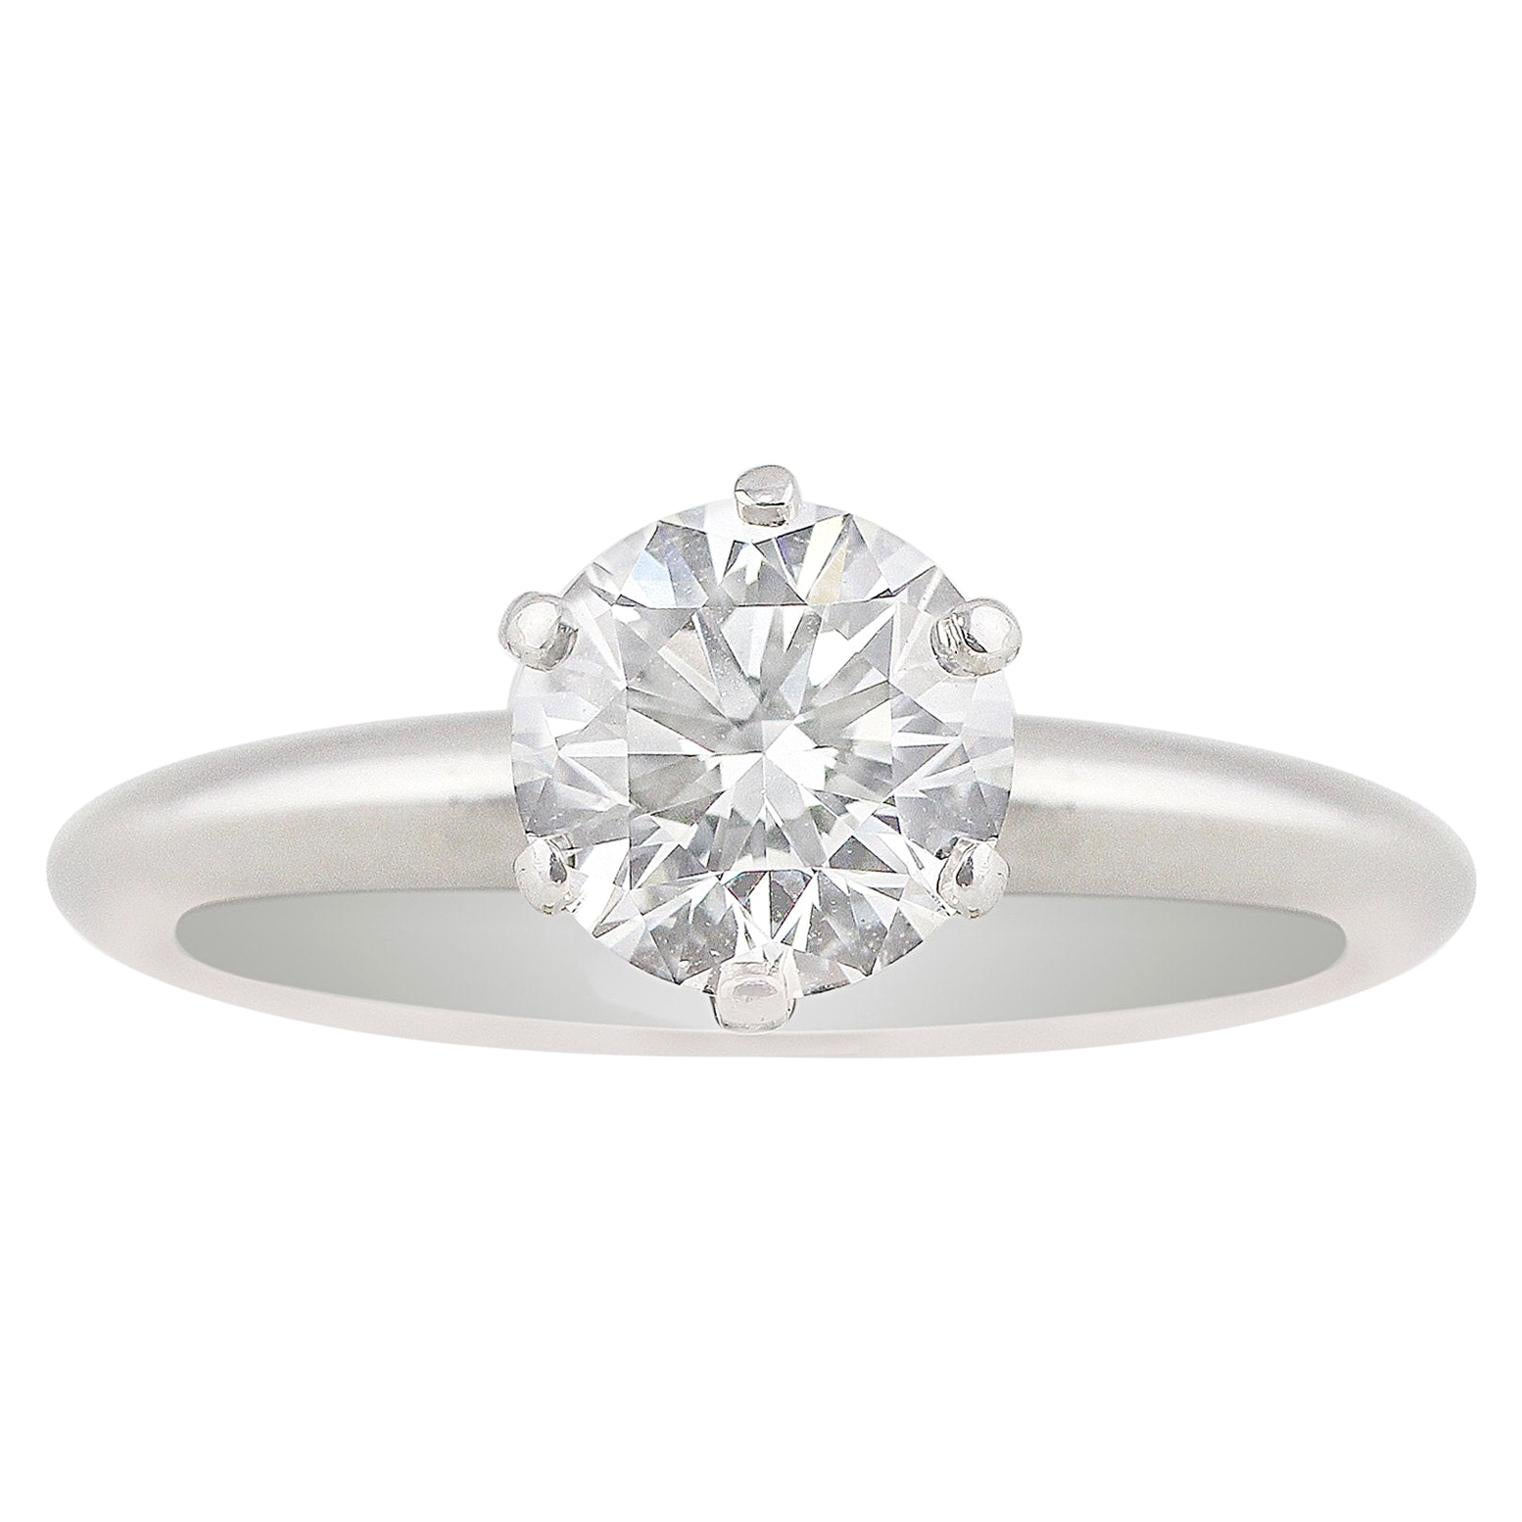 Tiffany & Co. Platinum Diamond Solitaire Ring GIA Certified